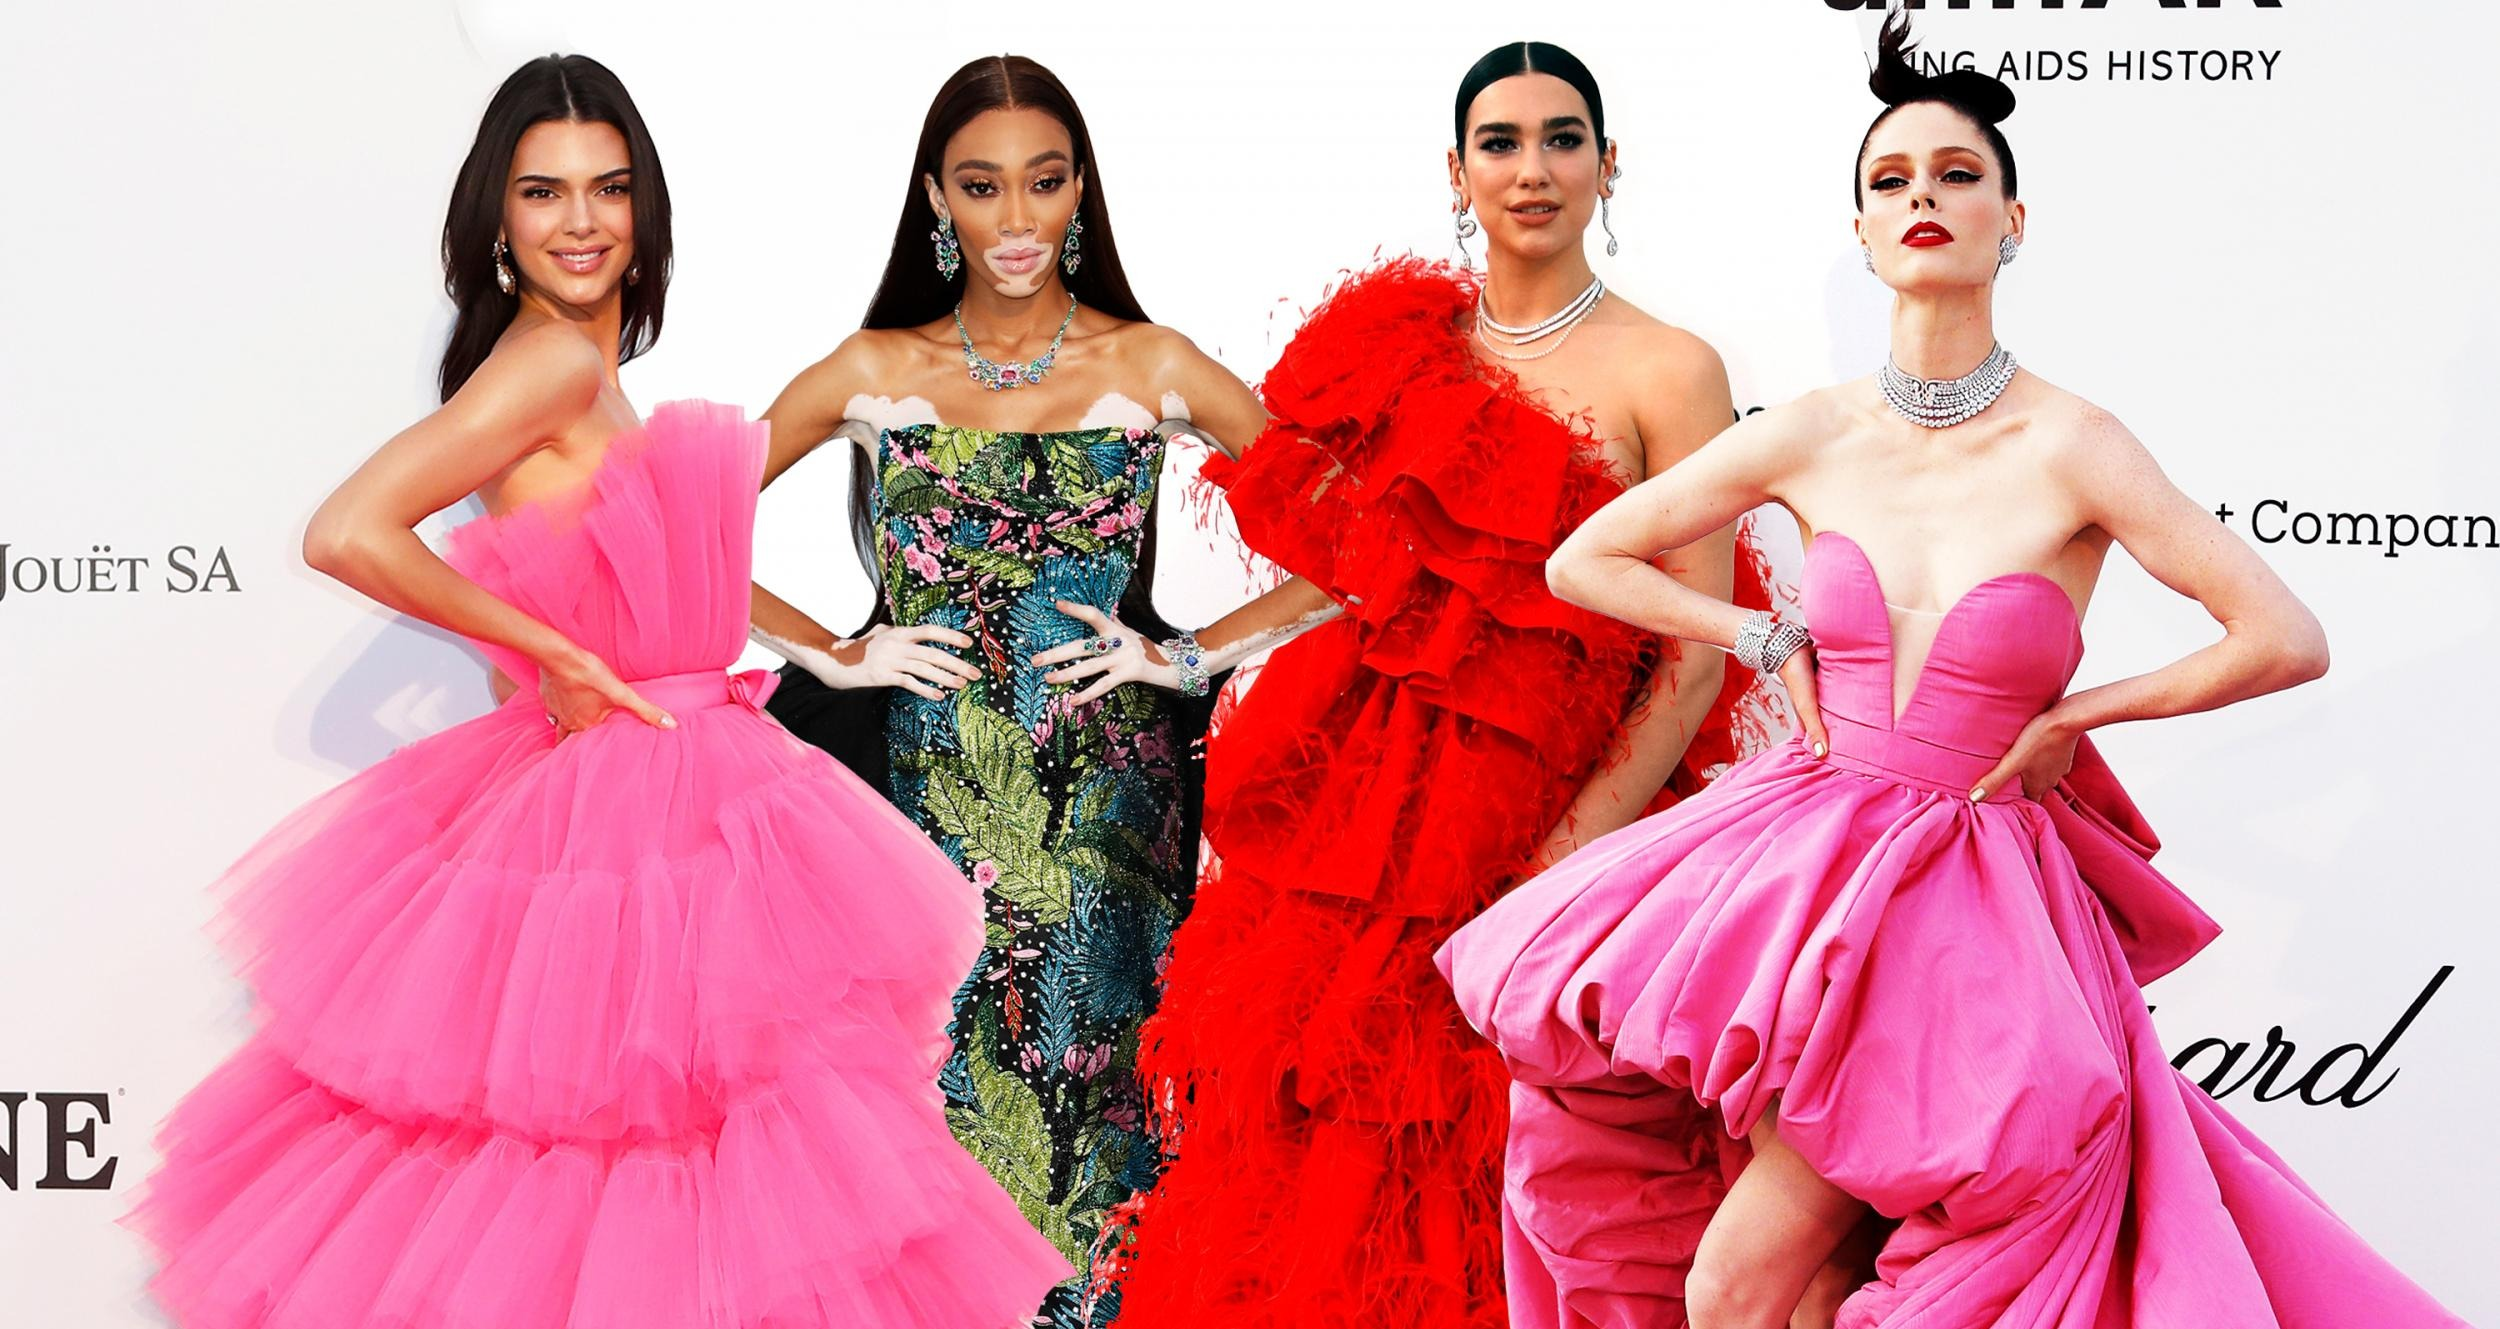 amfar gala celebrities in pink and red high fashion gowns